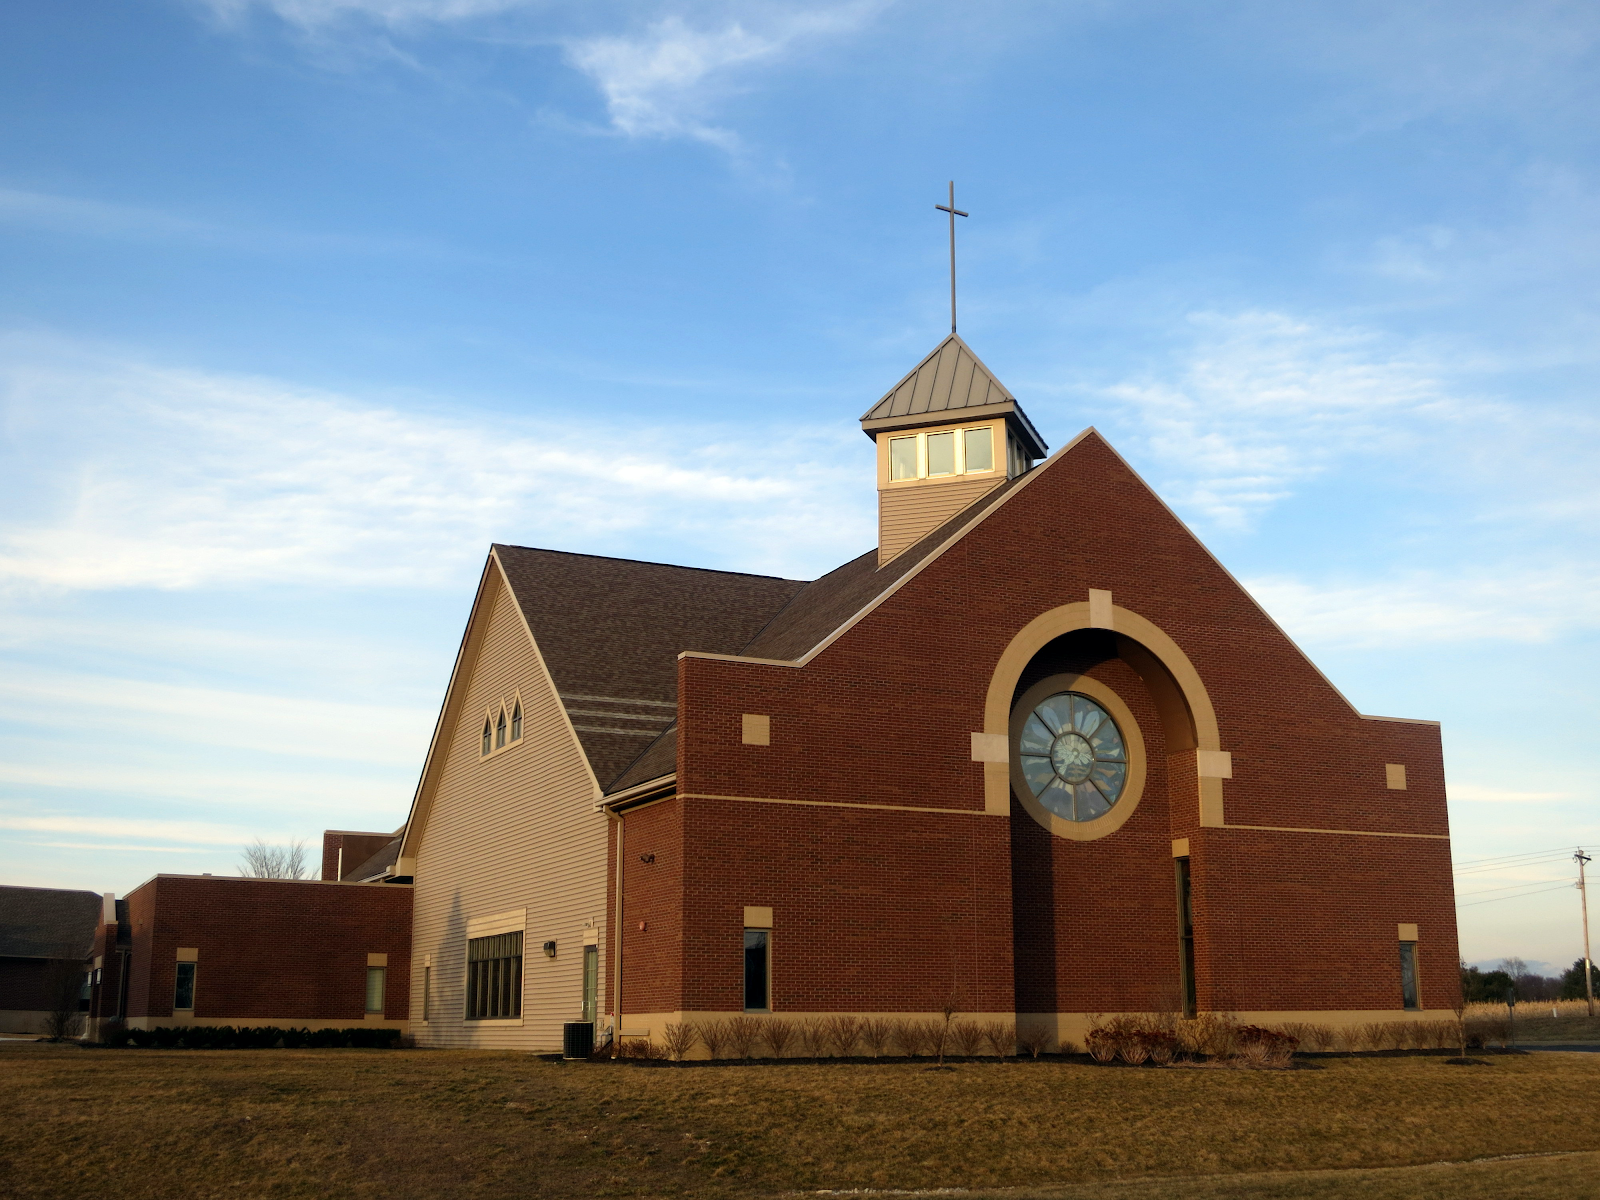 Saint John Neumann Catholic Church in sunbury